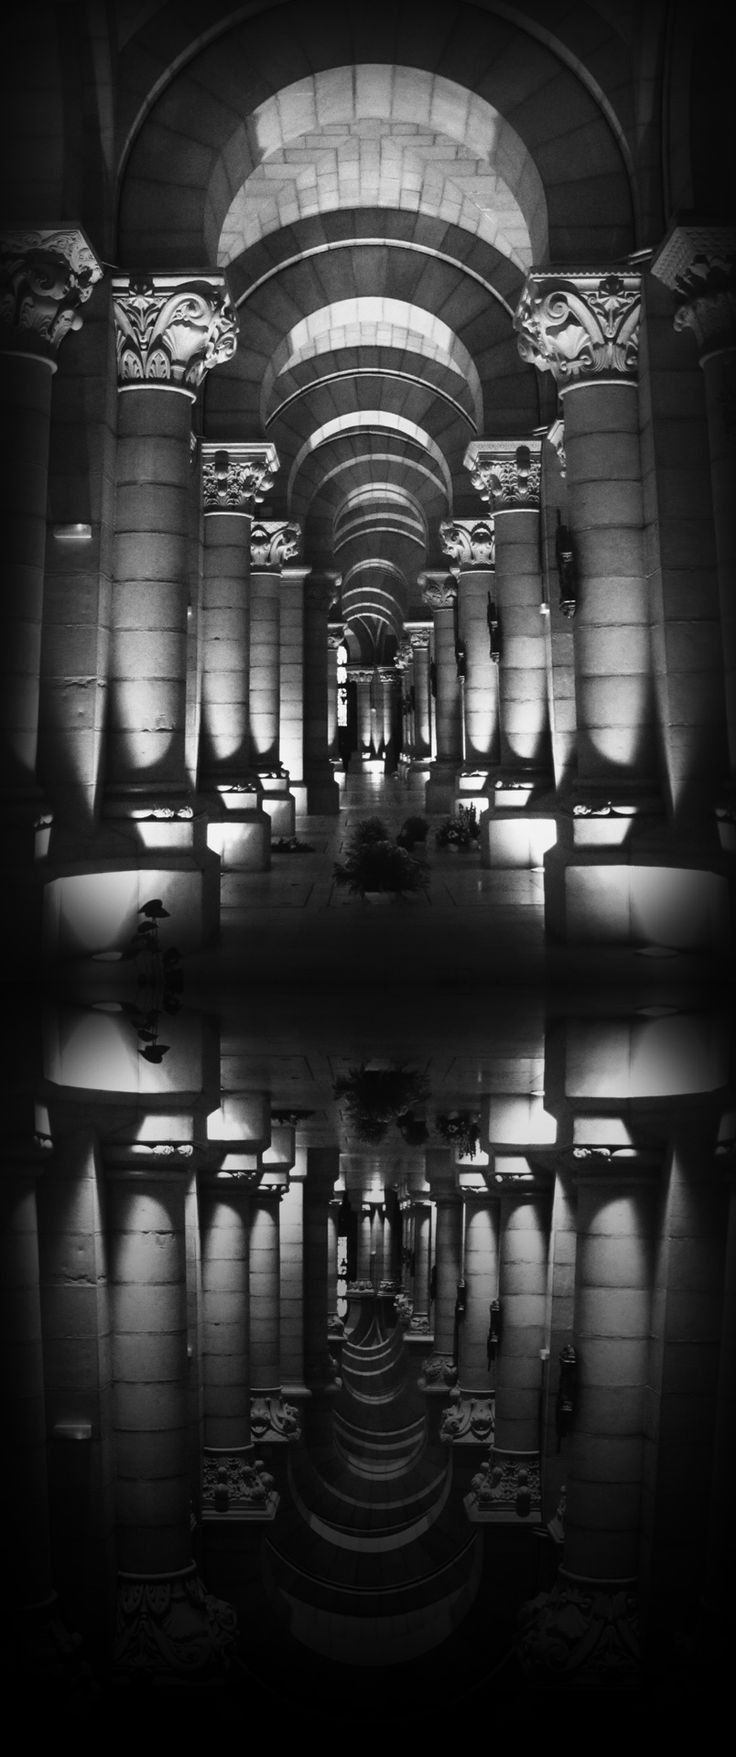 © Laura B. Fernández - The Crypt of the Cathedral de La Almudena, Madrid, Spain. 2012. S)